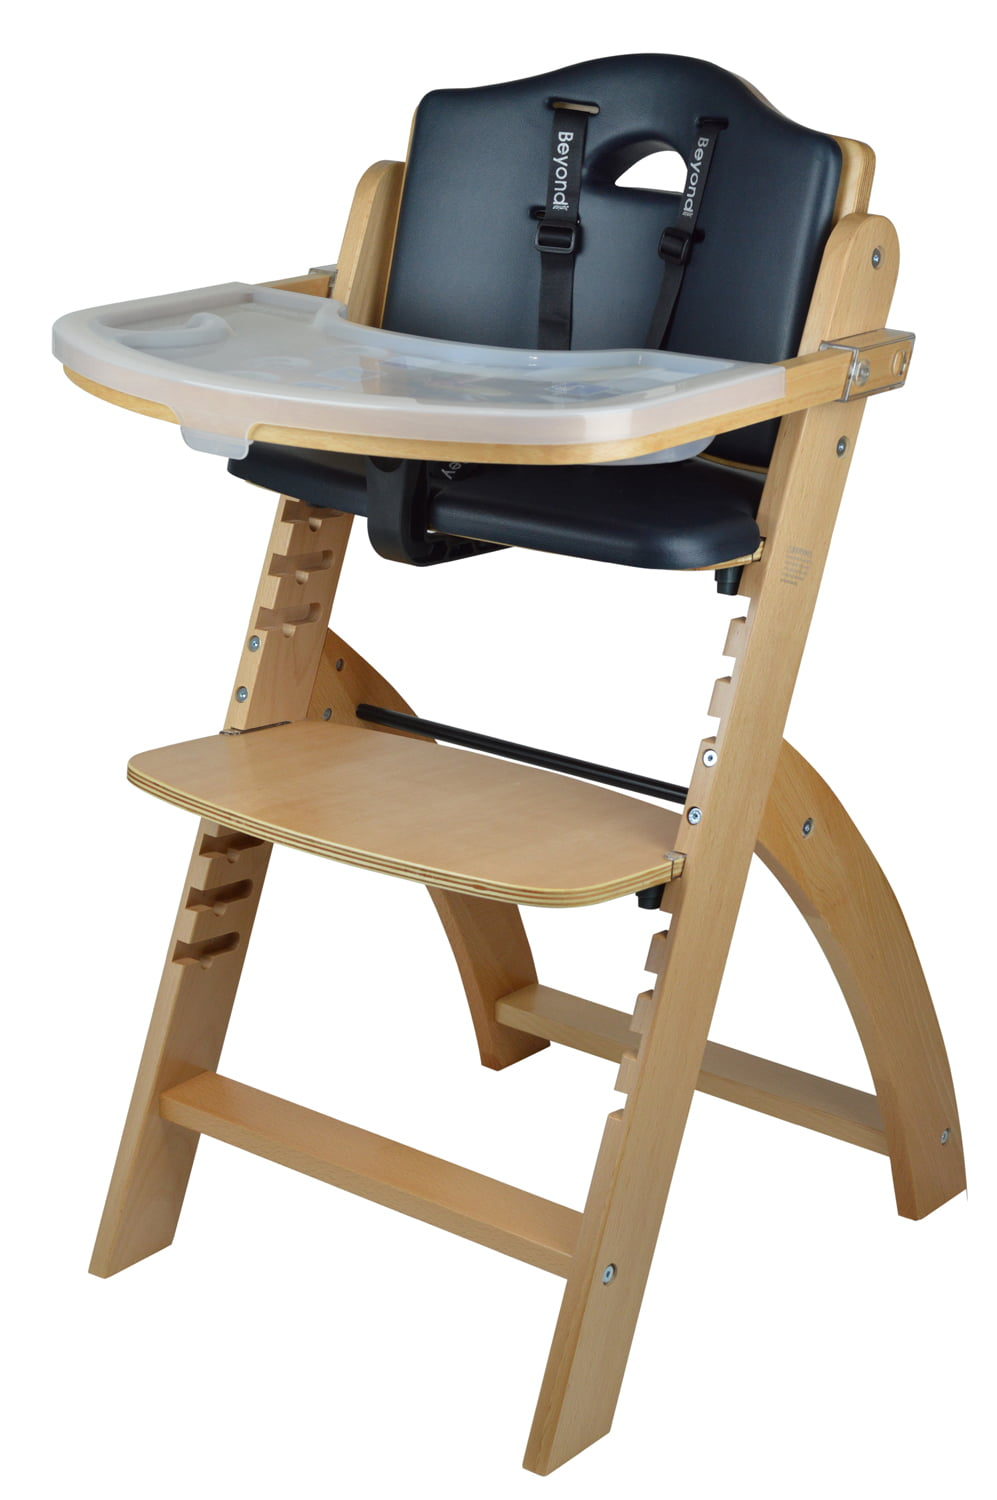 Abiie Beyond Wooden High Chair with Tray by Abiie